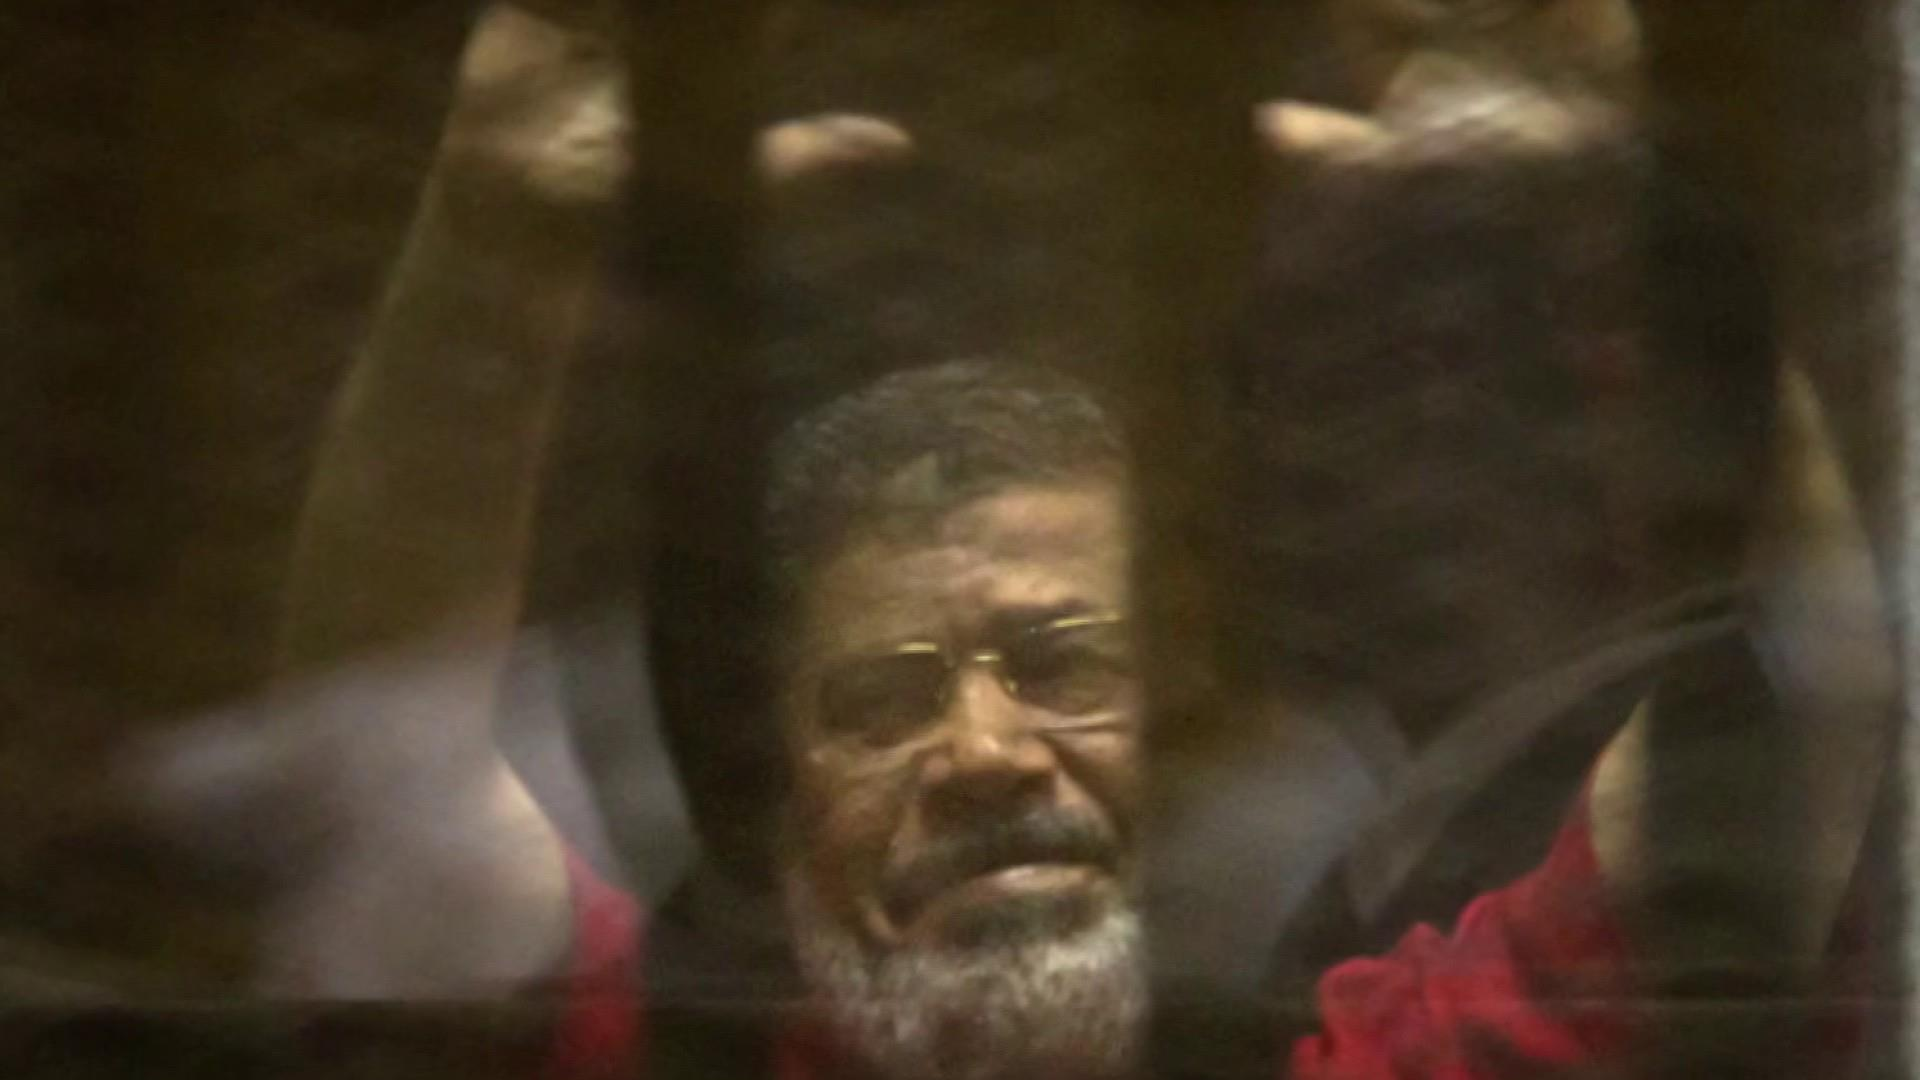 Former Egyptian president dies after court appearance